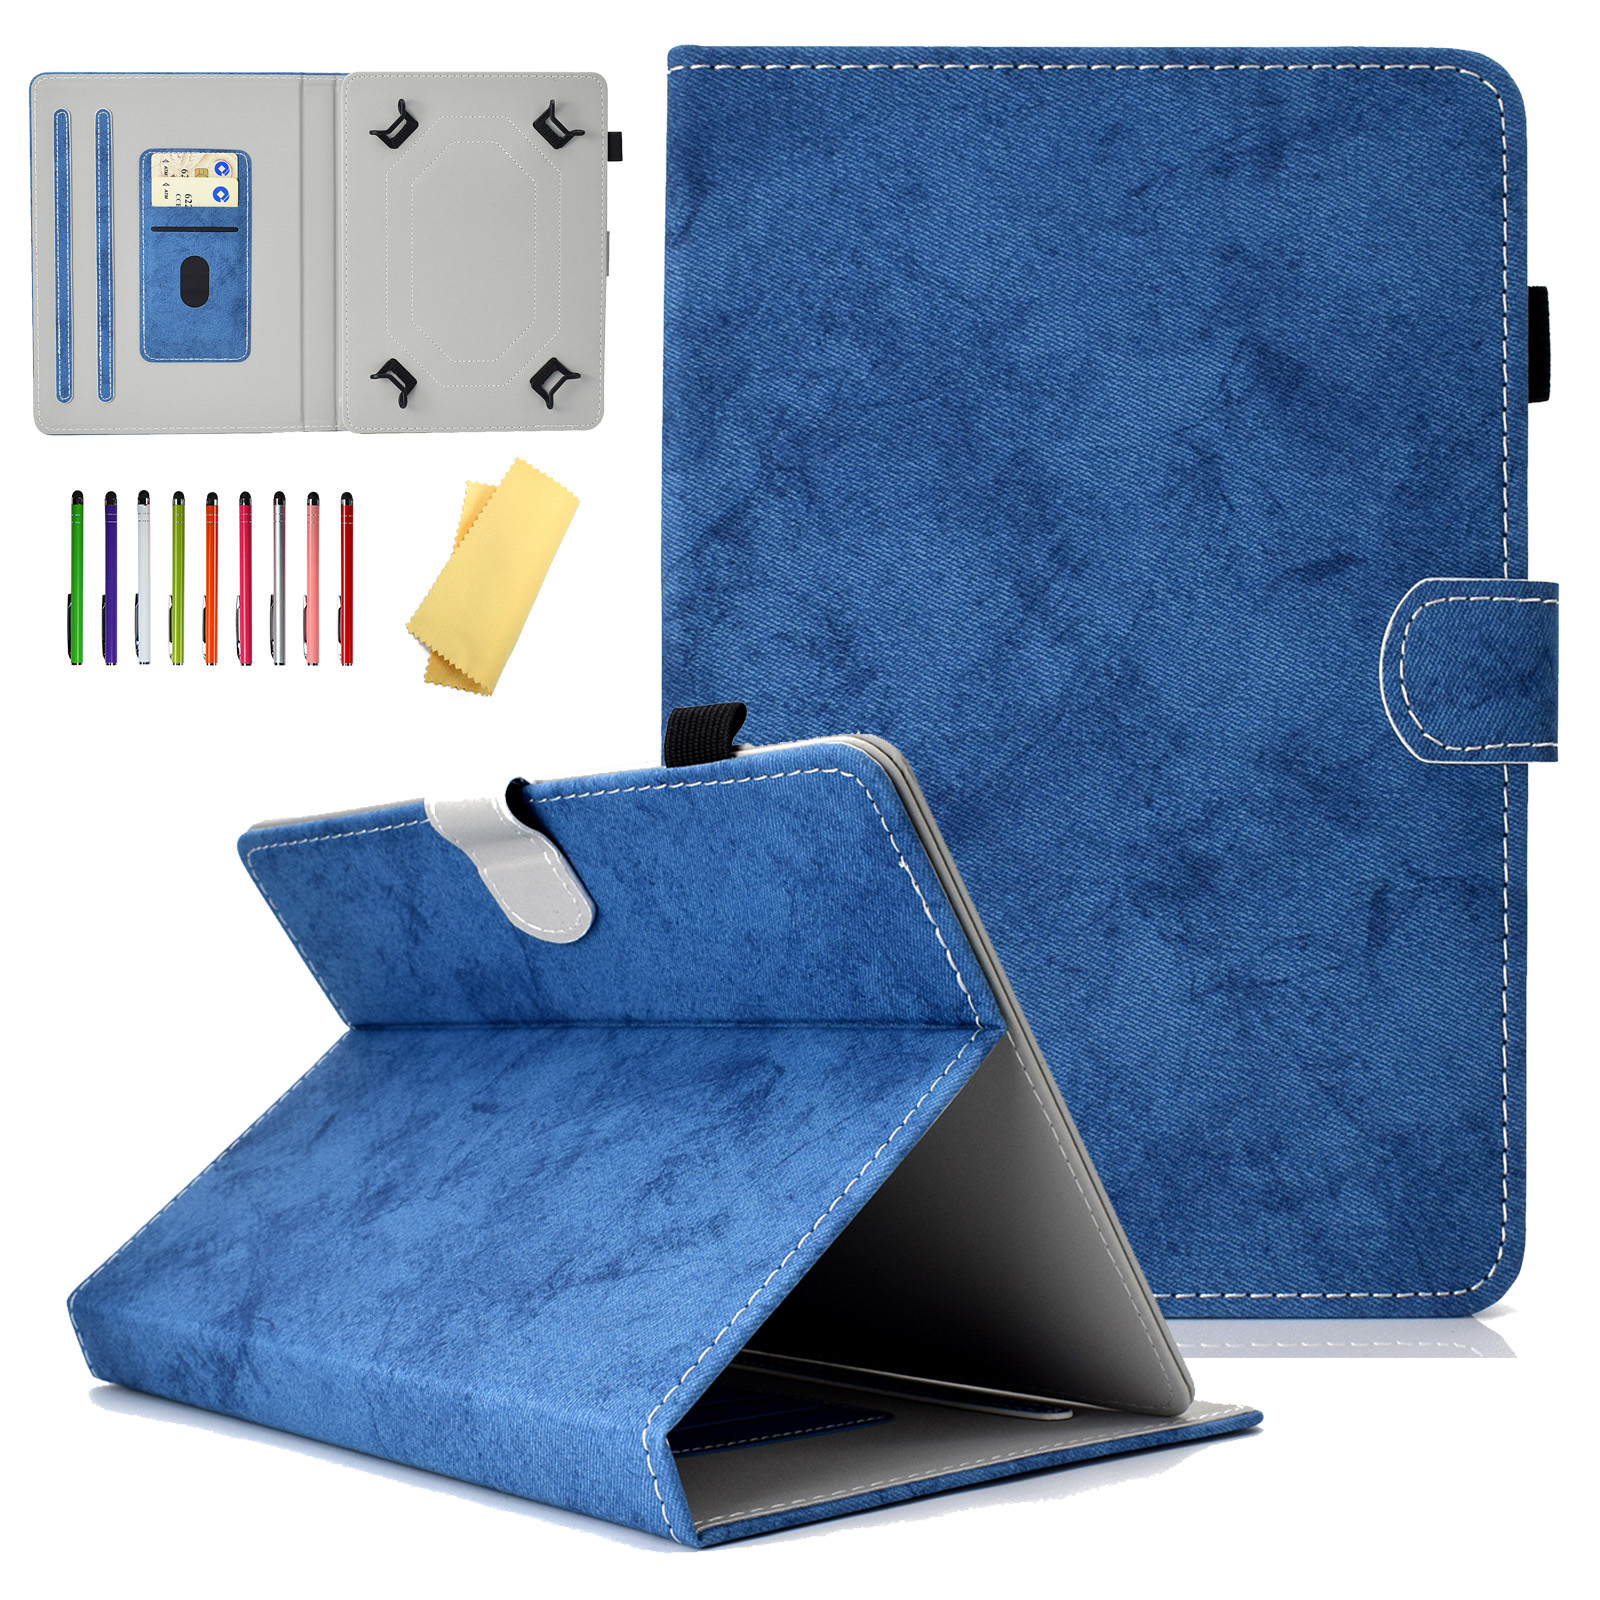 8.0 inch Universal Wallet Case, Goodest Protective Slim Stand Cover Case for iPad Mini/ Samsung Galaxy/ Amazon Kindle Fire HD 8/ Huawei Mediapad/ Lenovo/ RCA/ Acer and More 7.0-8.0 inch Tablet